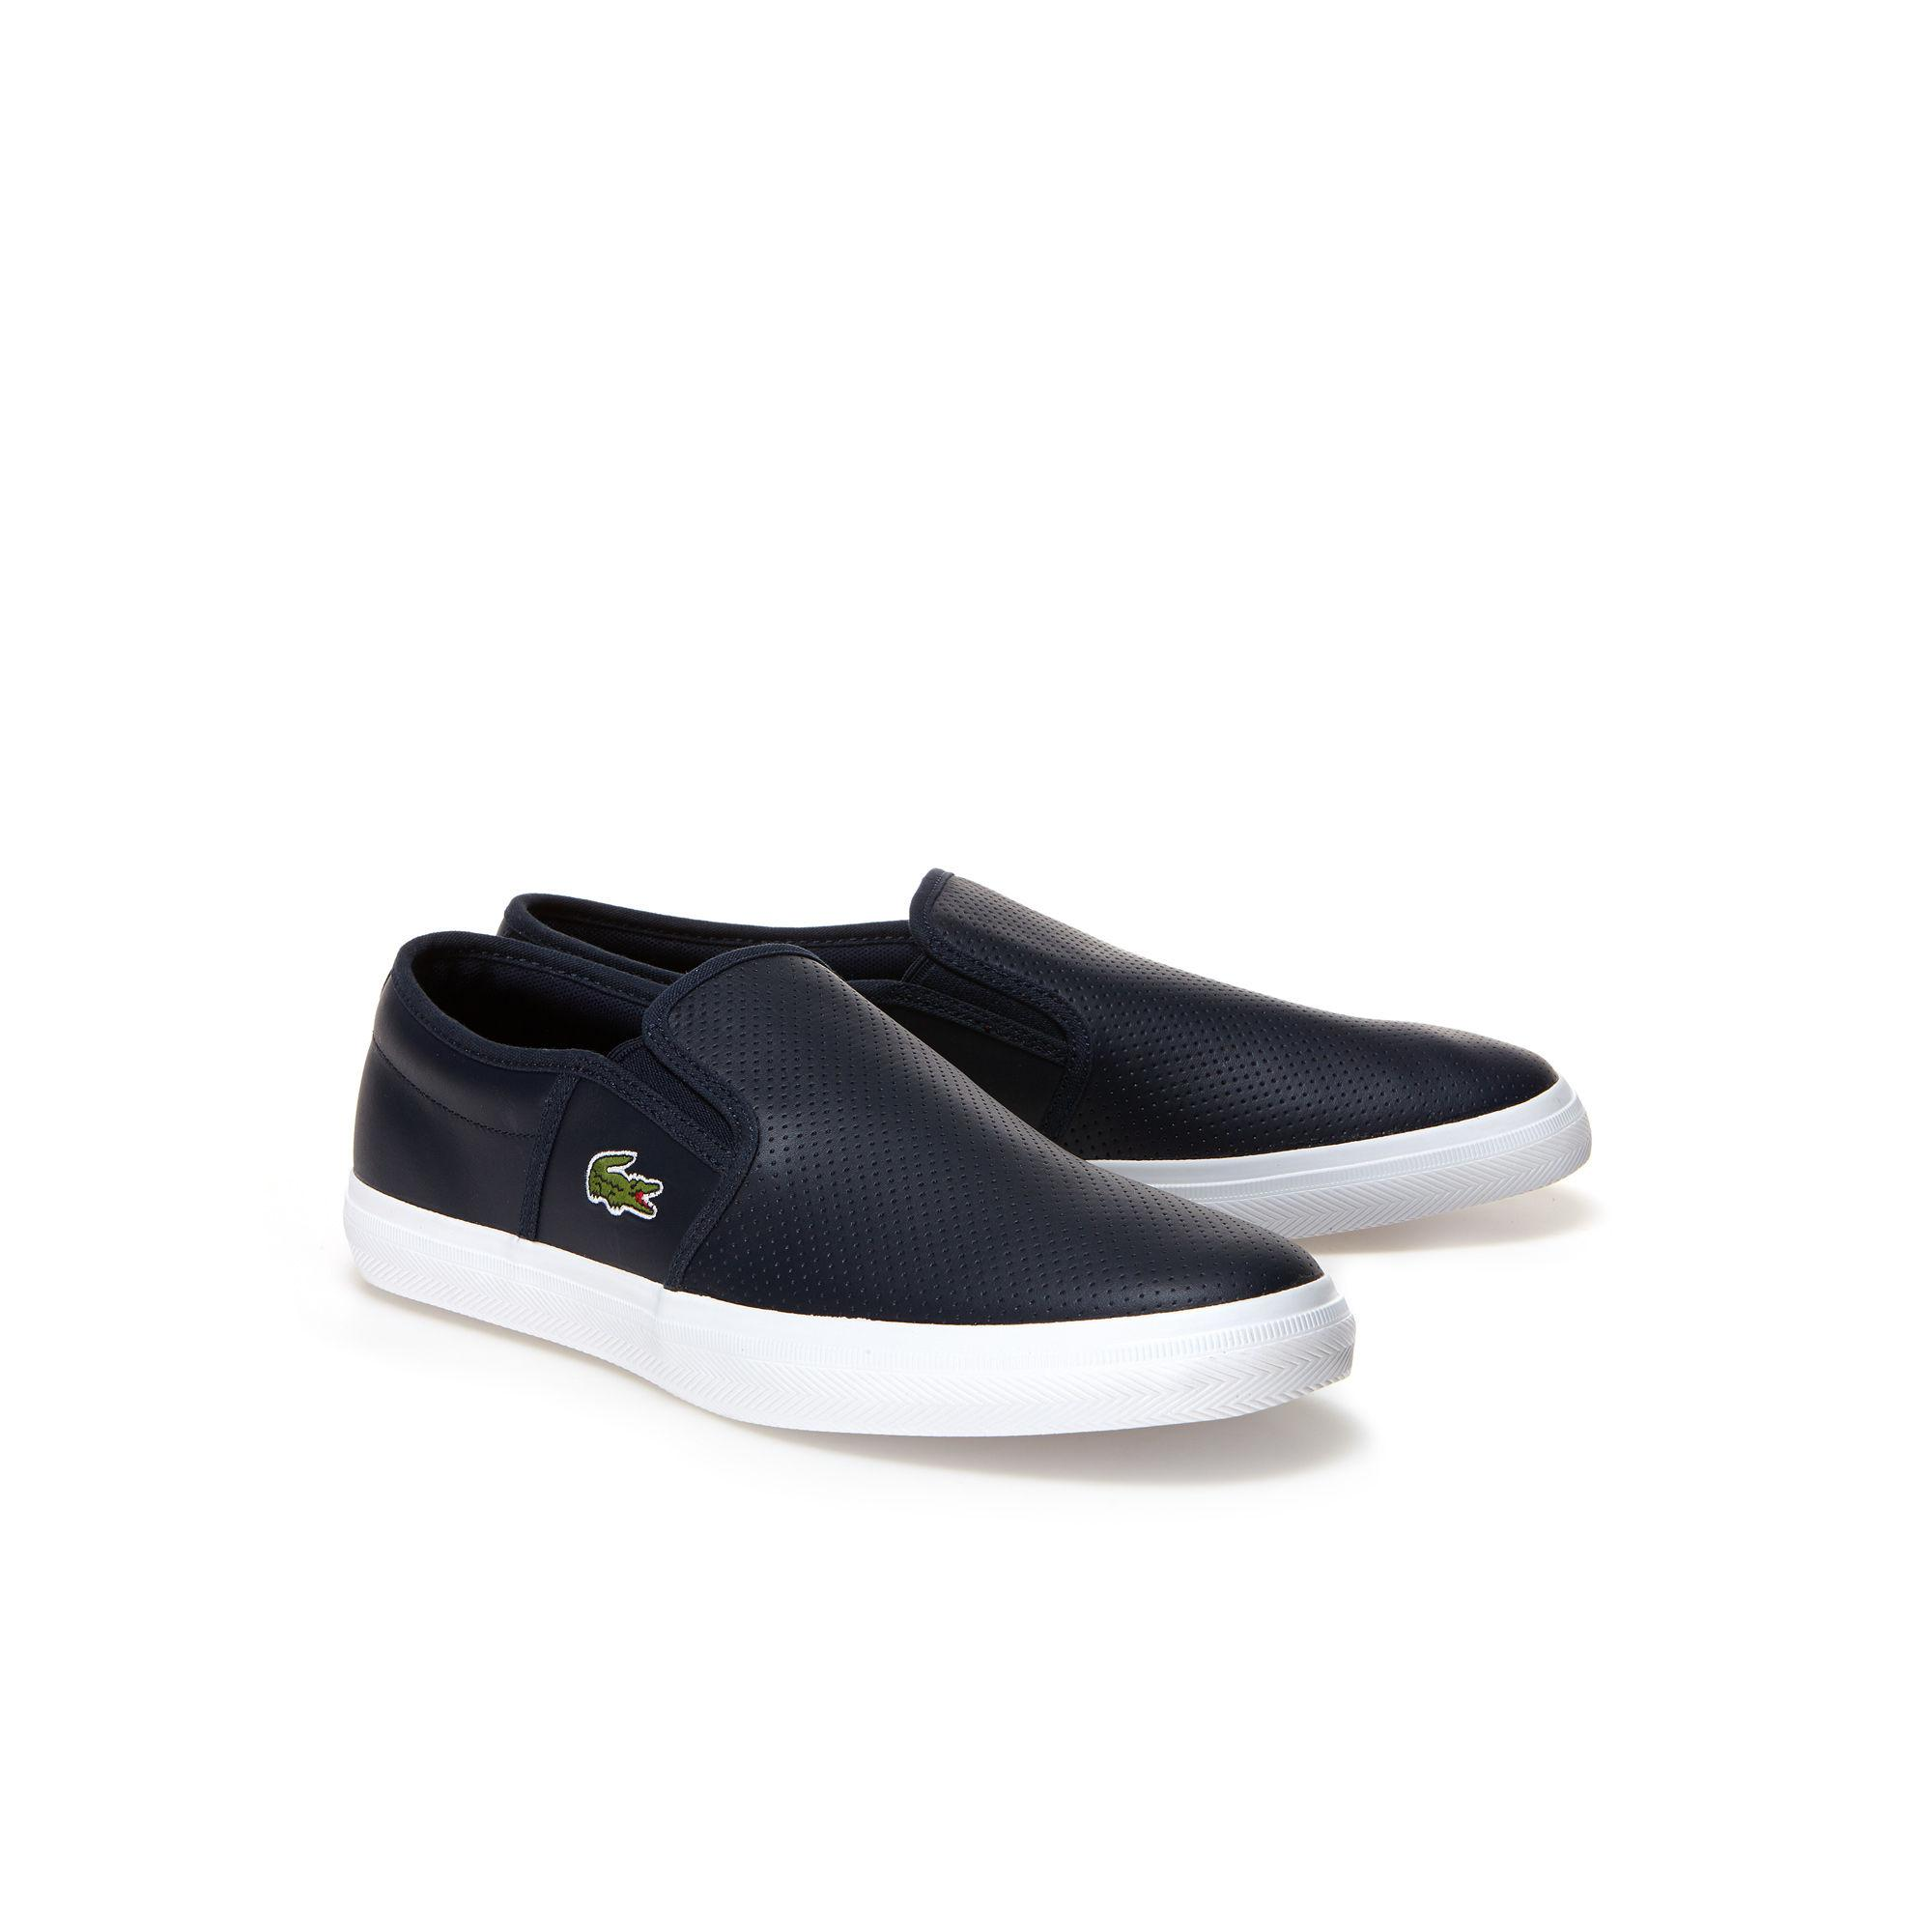 7a45789eb4e0d0 Lyst - Lacoste Gazon Leather Slip-ons in Blue for Men